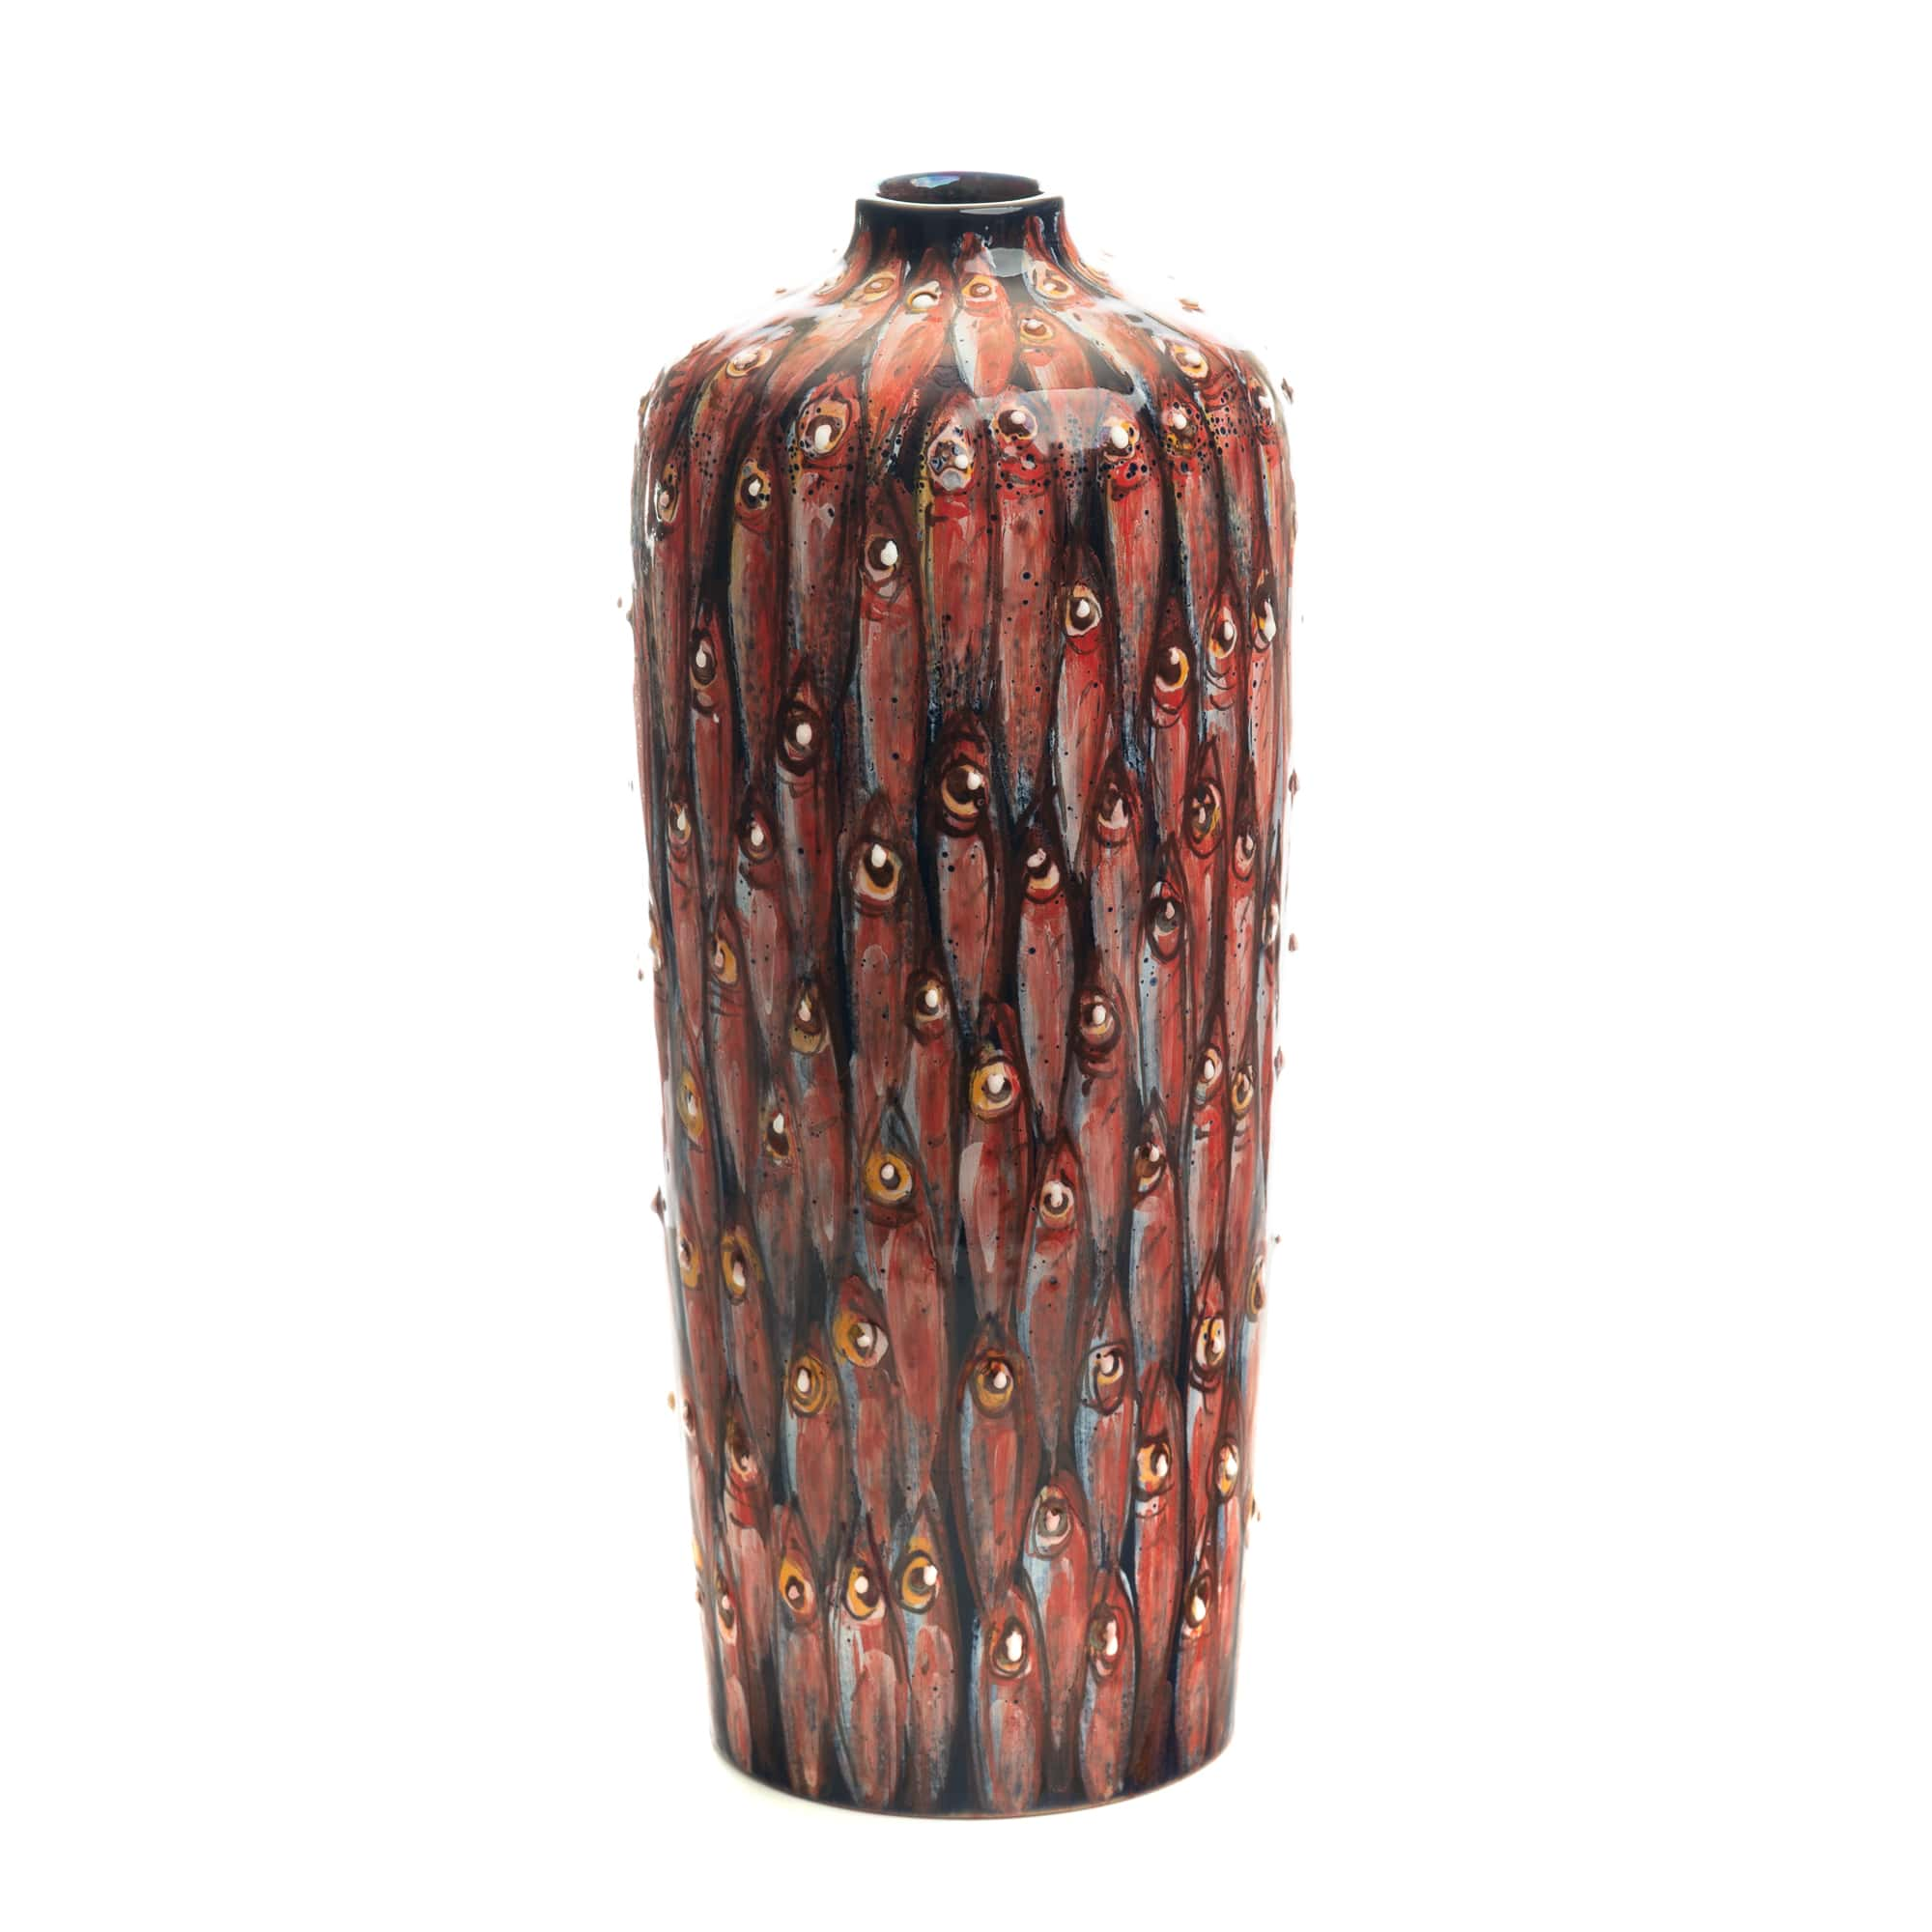 Vignoli Cylindrical Vase Red Black Anchovies Vertical